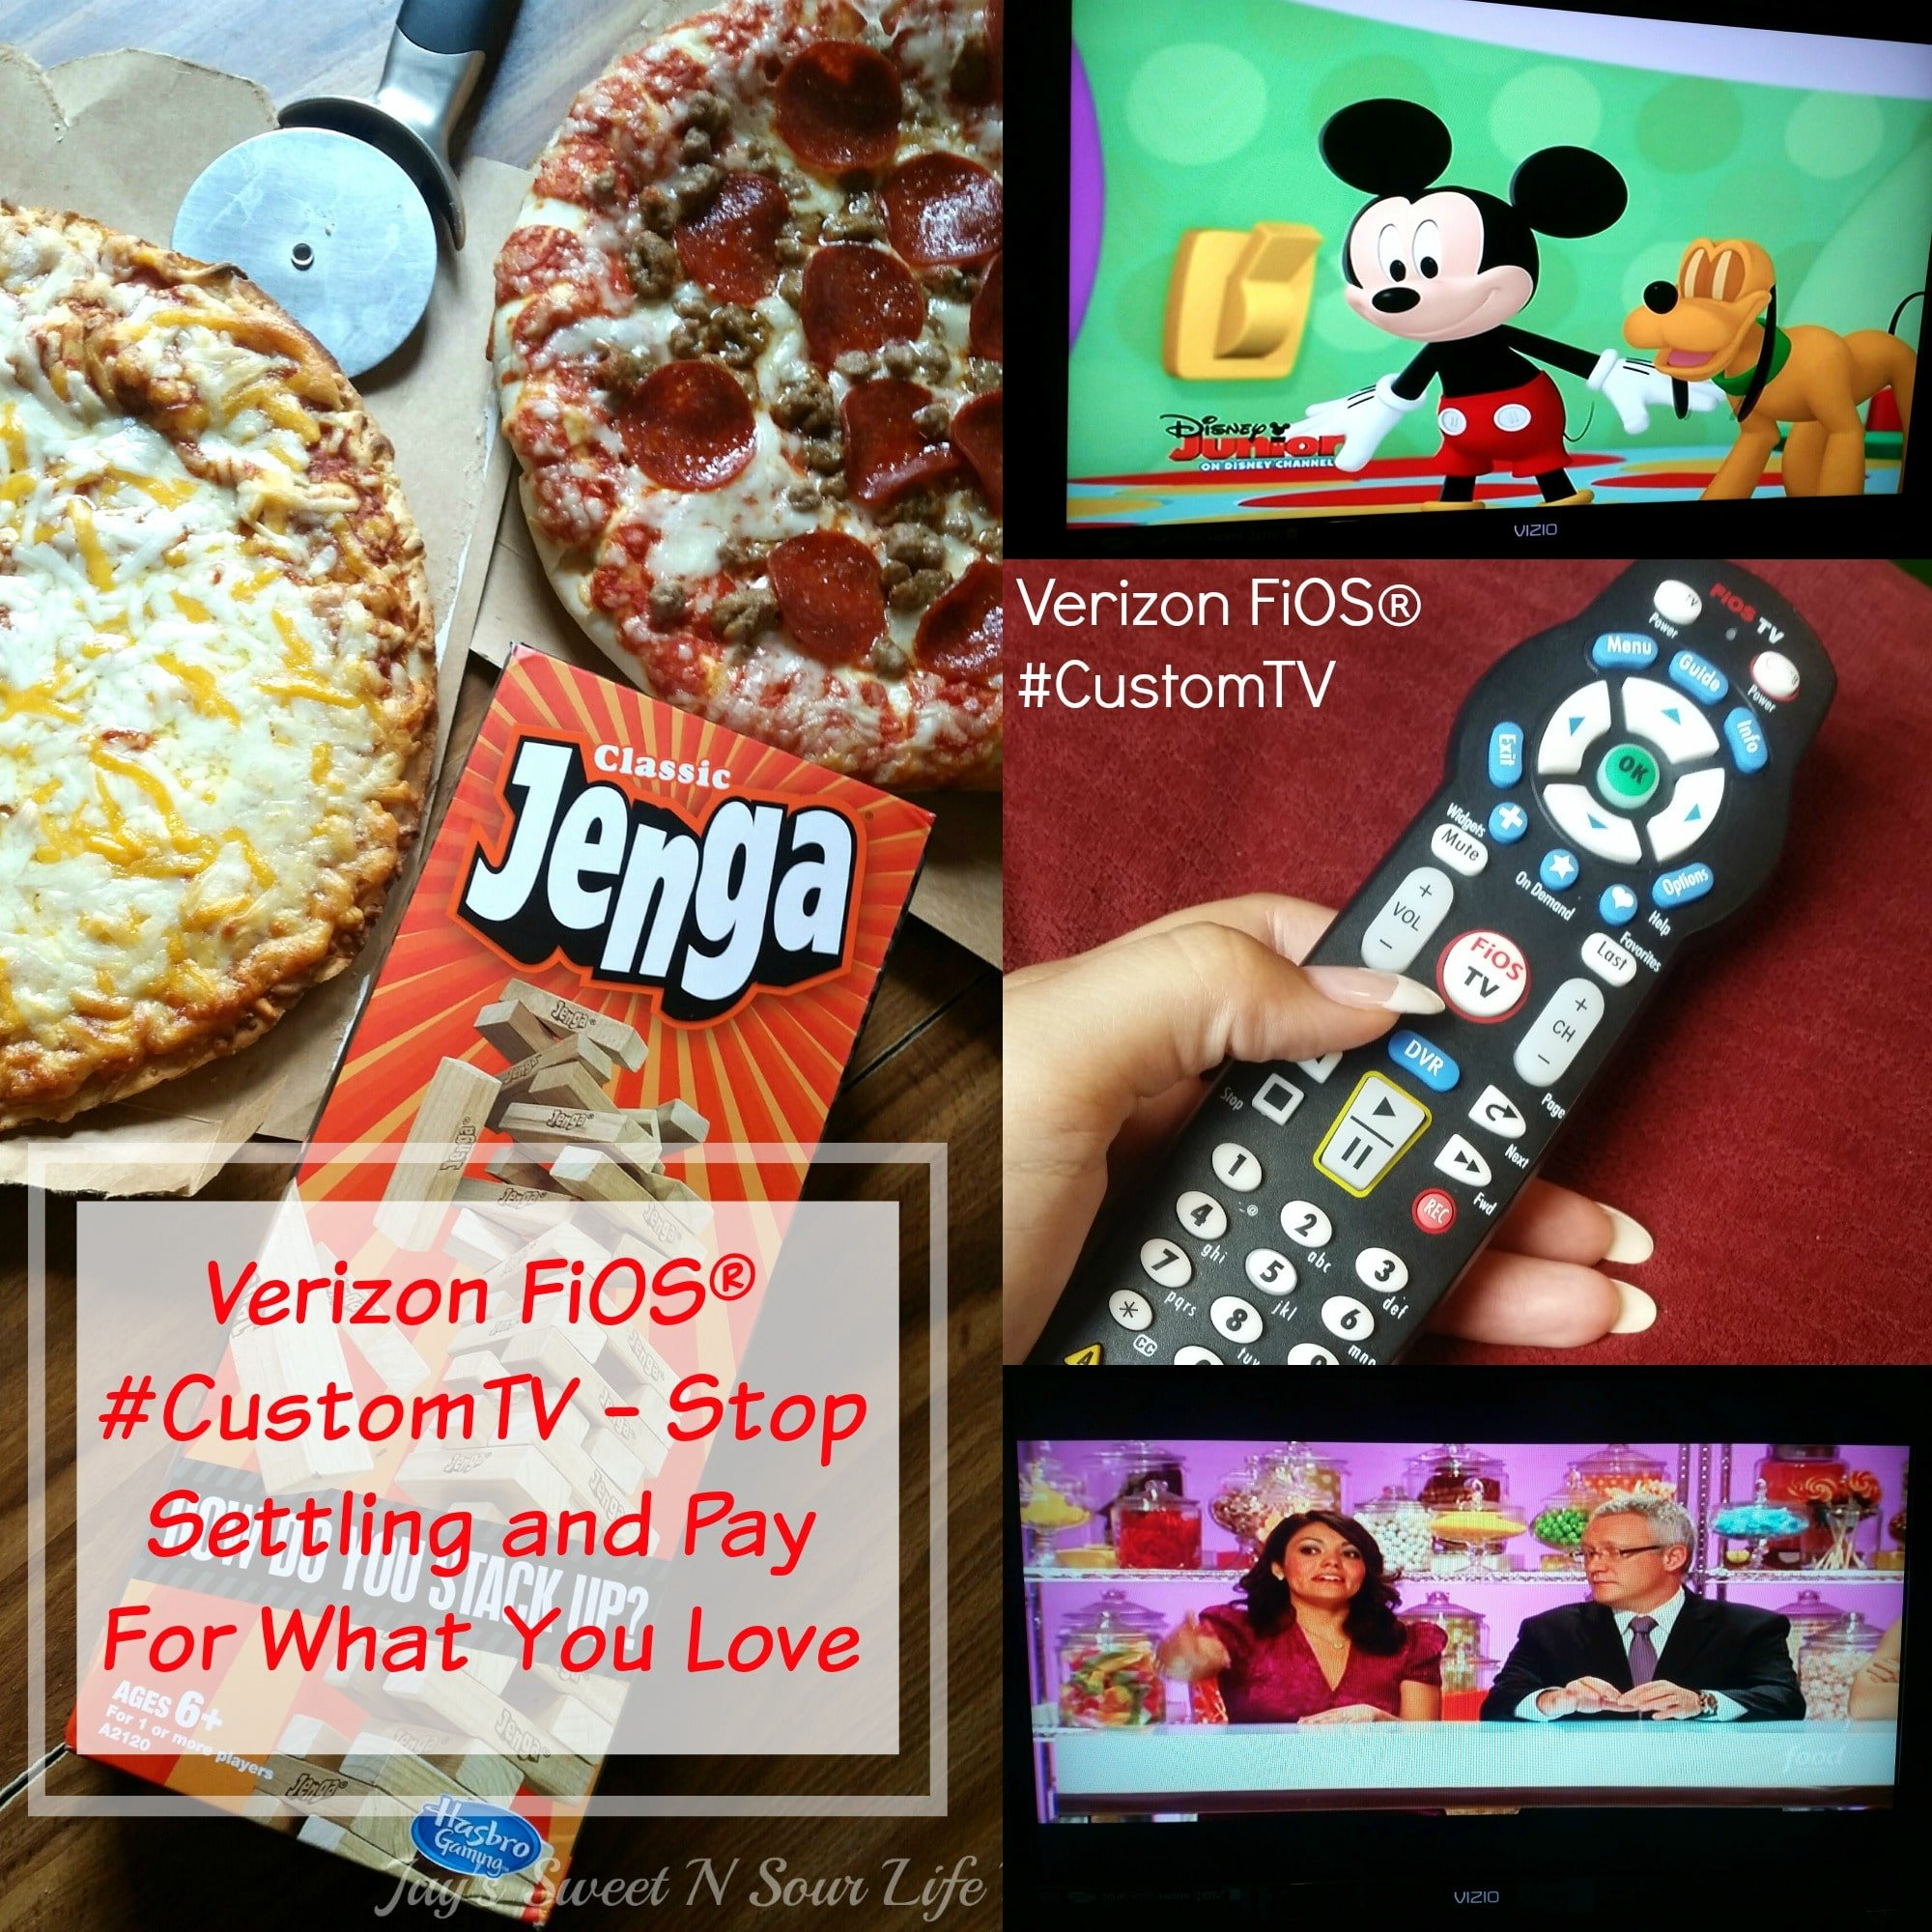 Verizon FiOS® #CustomTV – Stop Settling and Pay For What You Love